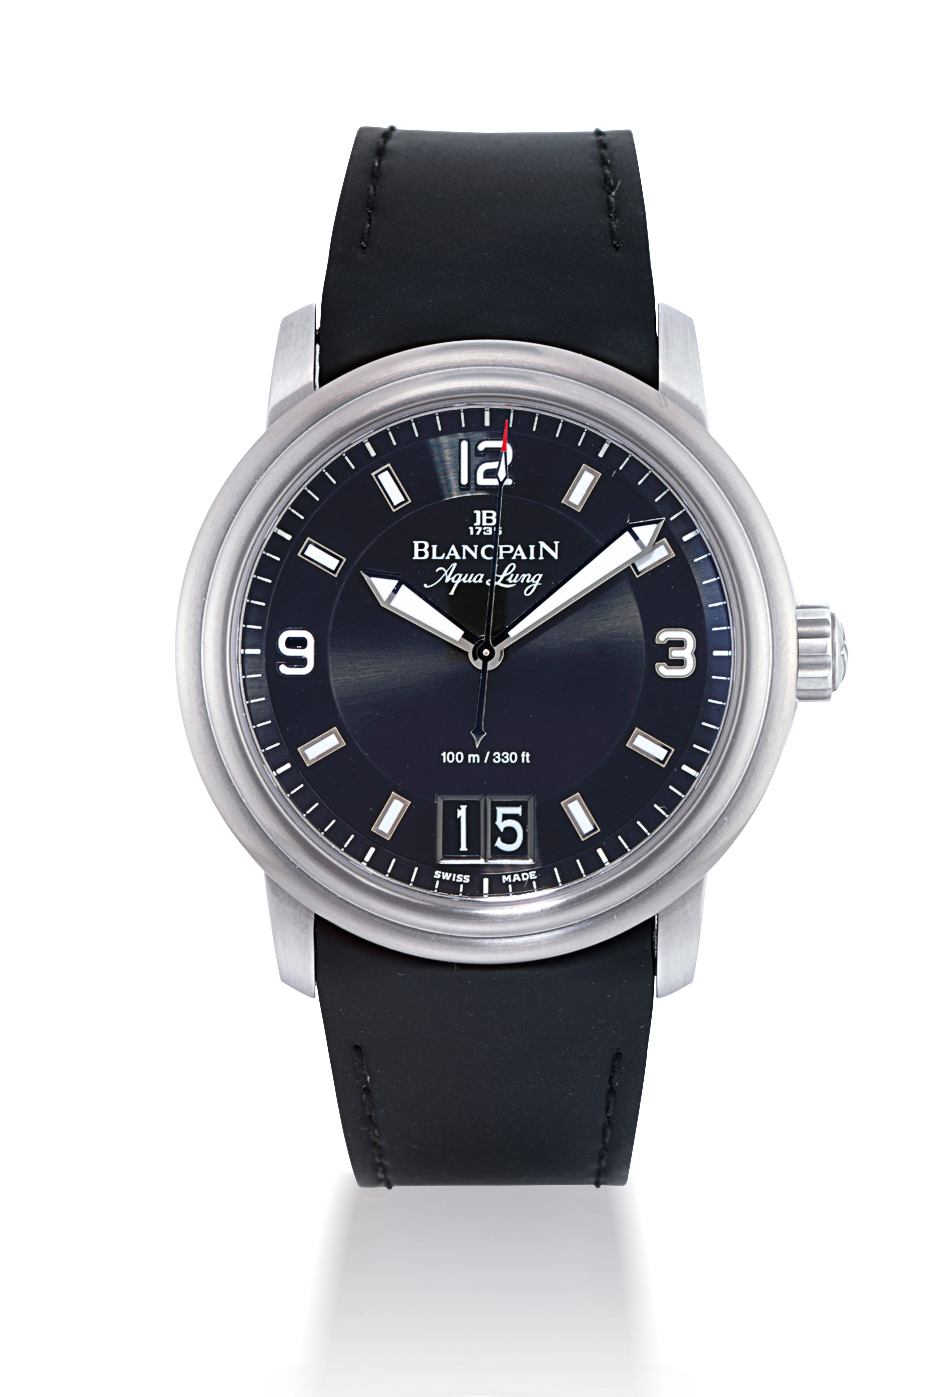 BLANCPAIN, LEMAN - AQUA LUNG  STAINLESS STEEL AUTOMATIC WRISTWATCH WITH DATE DISPLAY, LIMITED EDITION OF 2005